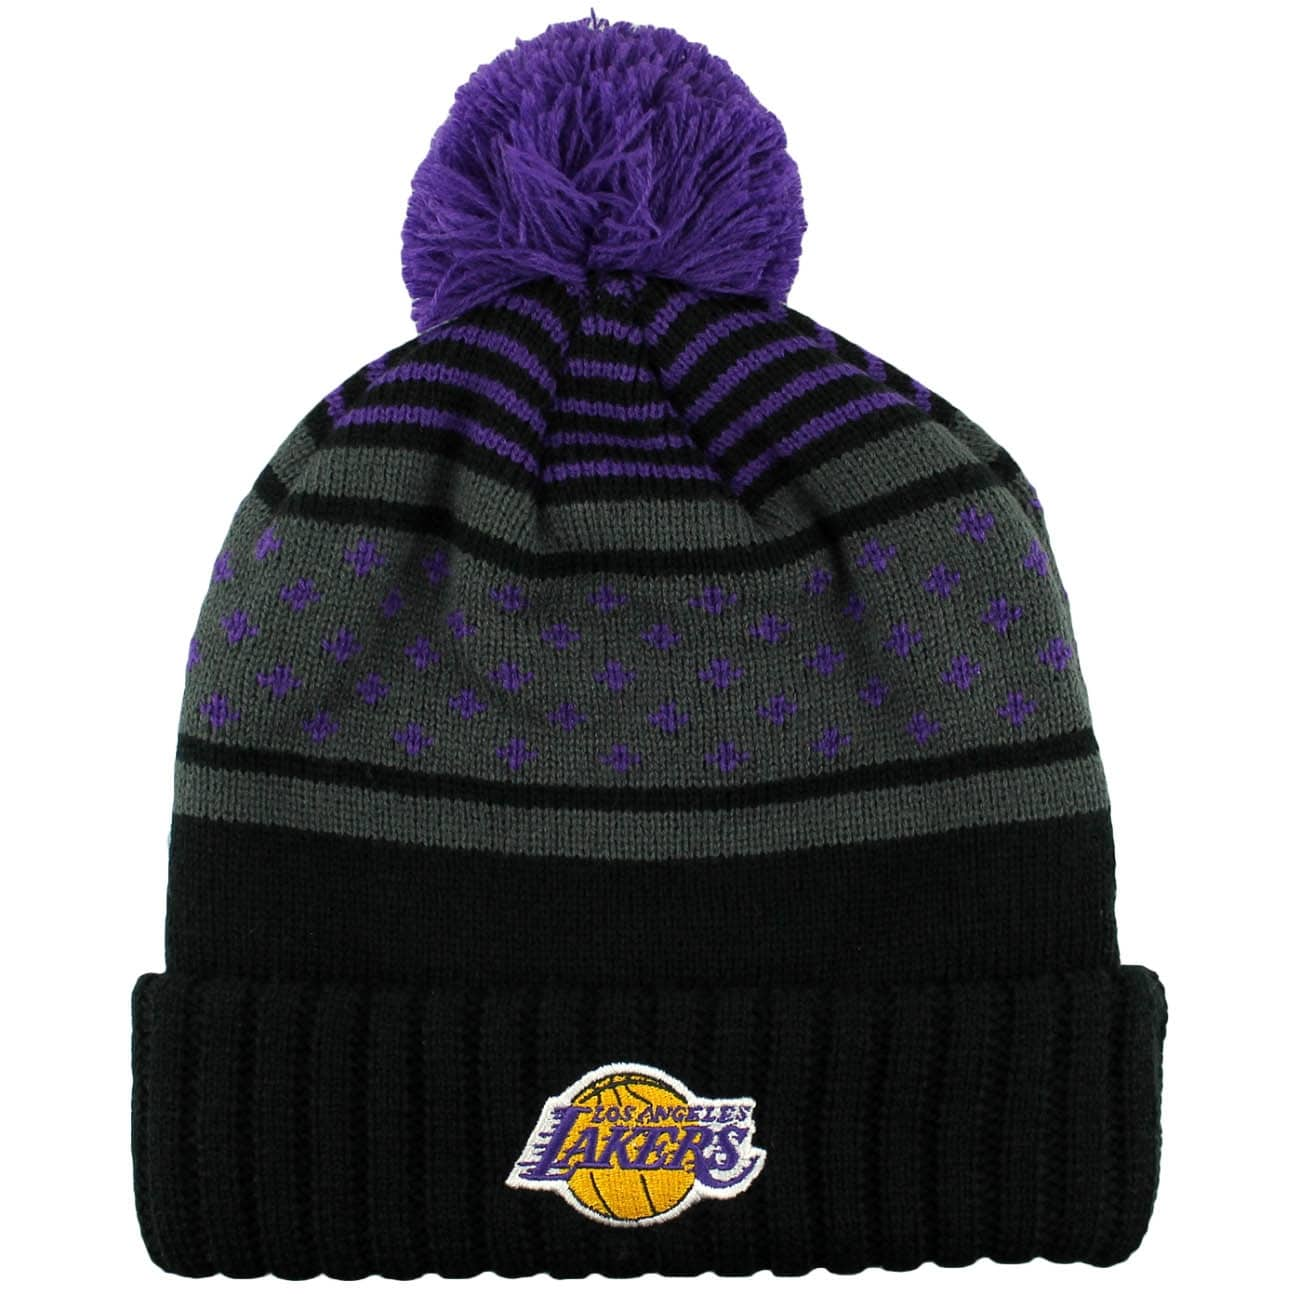 8853602be82 Mitchell   Ness Los Angeles Lakers Highlands 2.0 NBA Knit Hat  w Pom ...